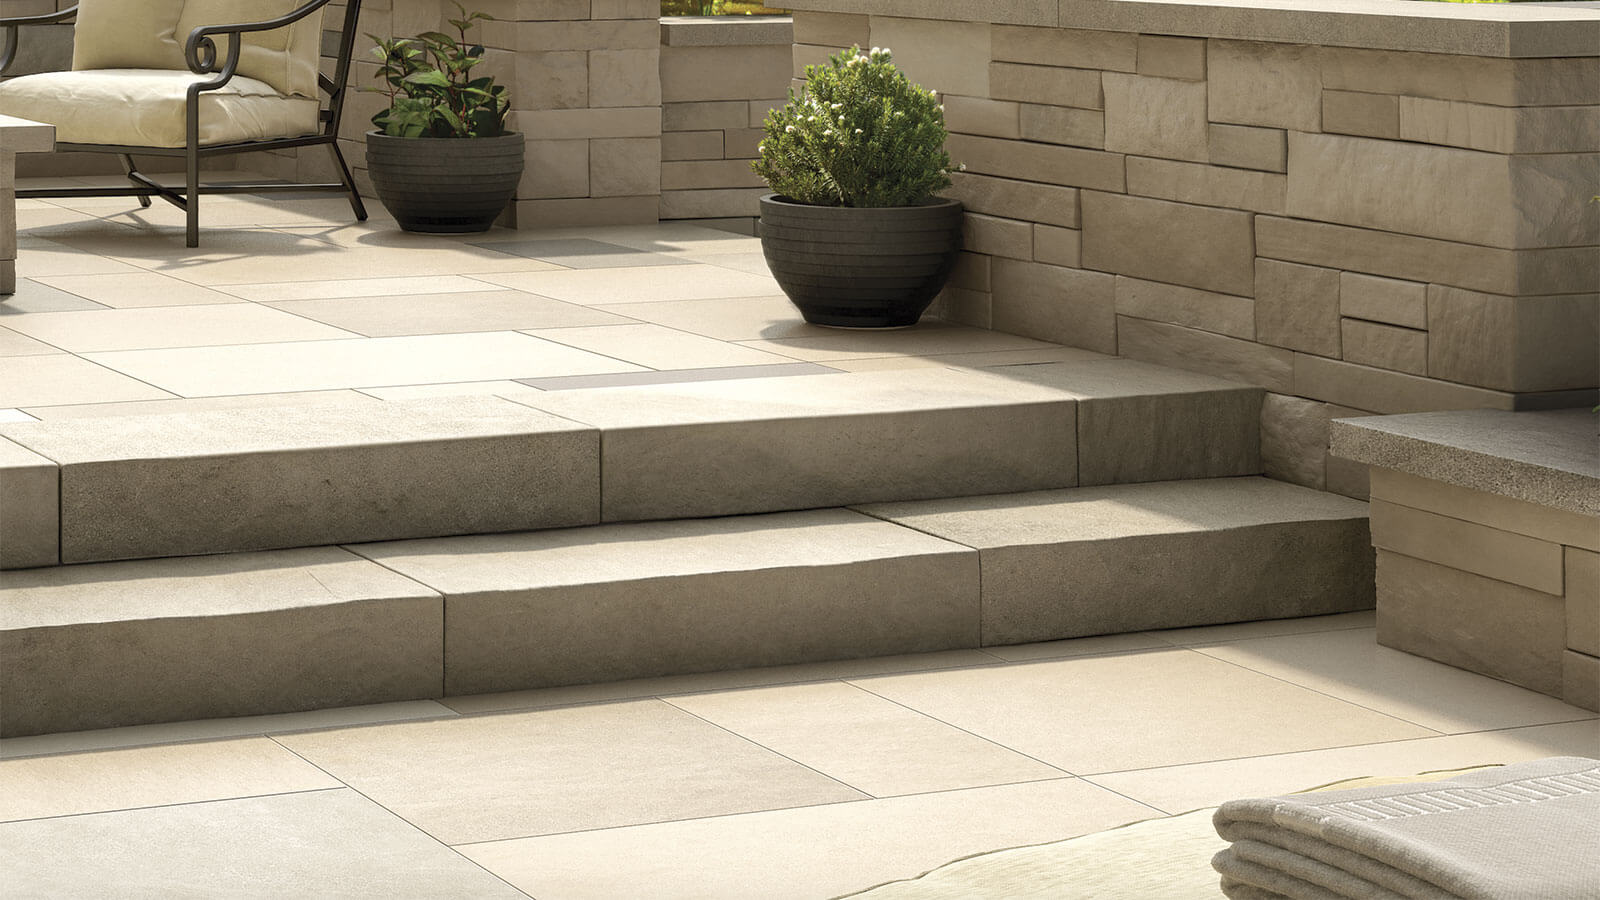 Steps & Treads 5 - Polycor Hardscapes